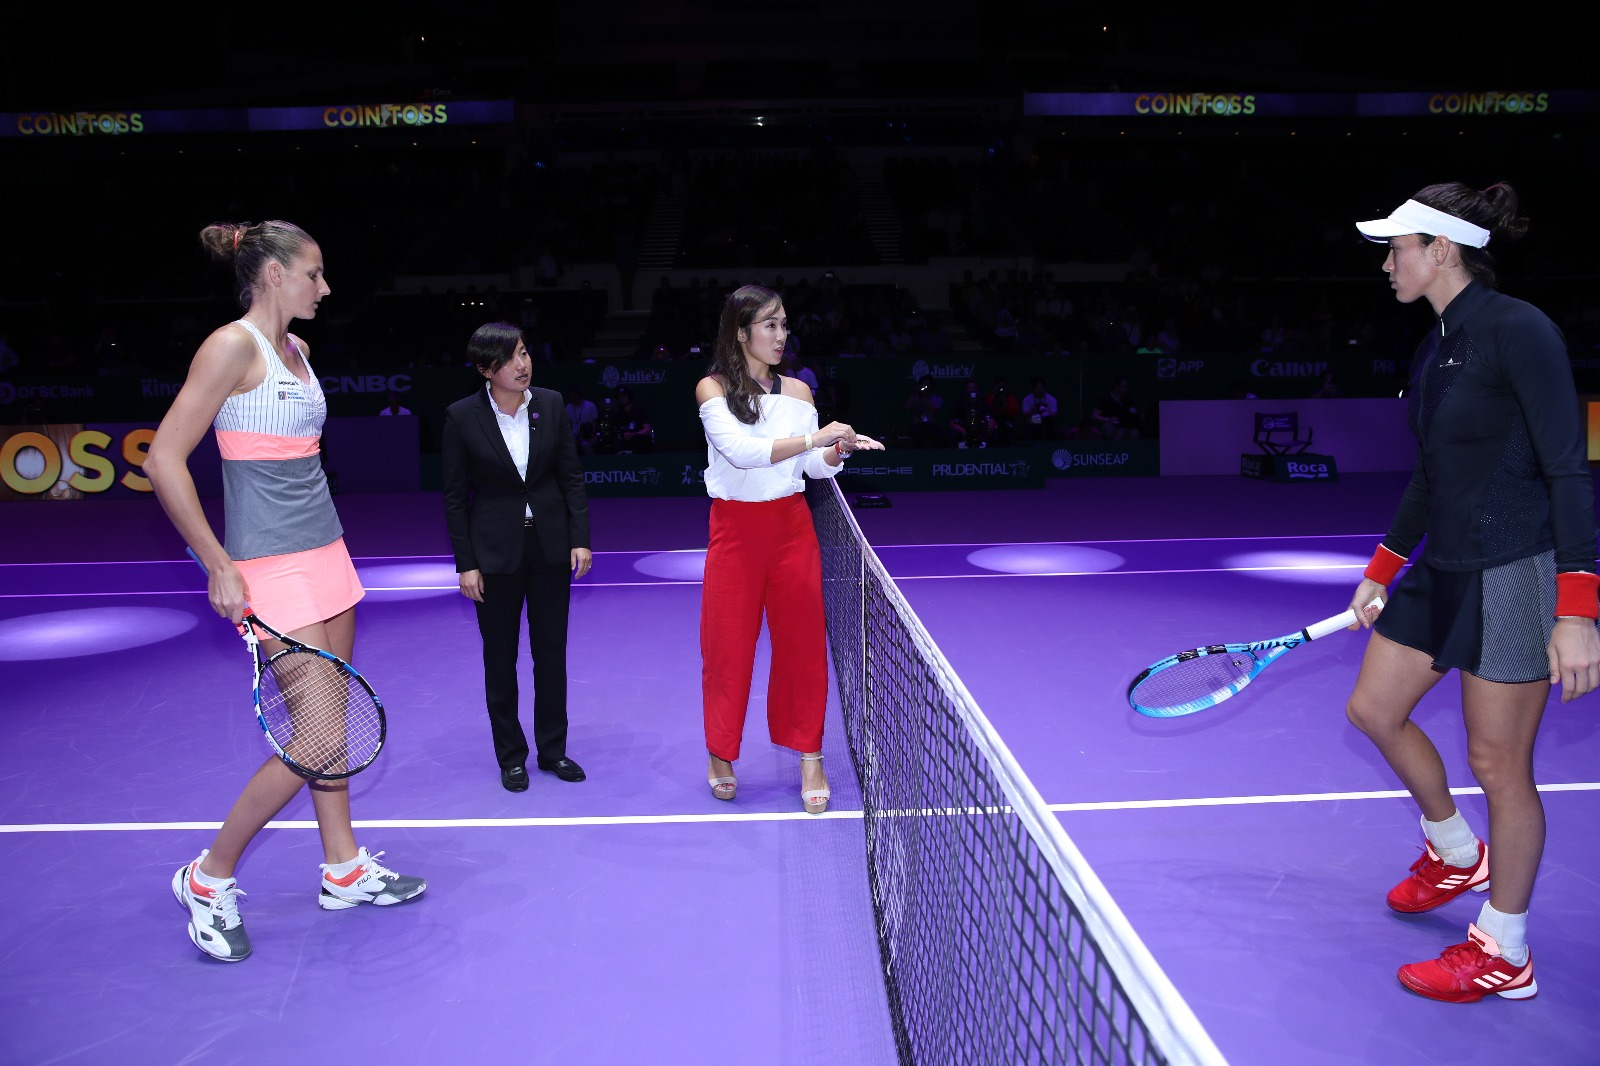 gastronommy com: WTA Finals Singapore | The Coin Toss